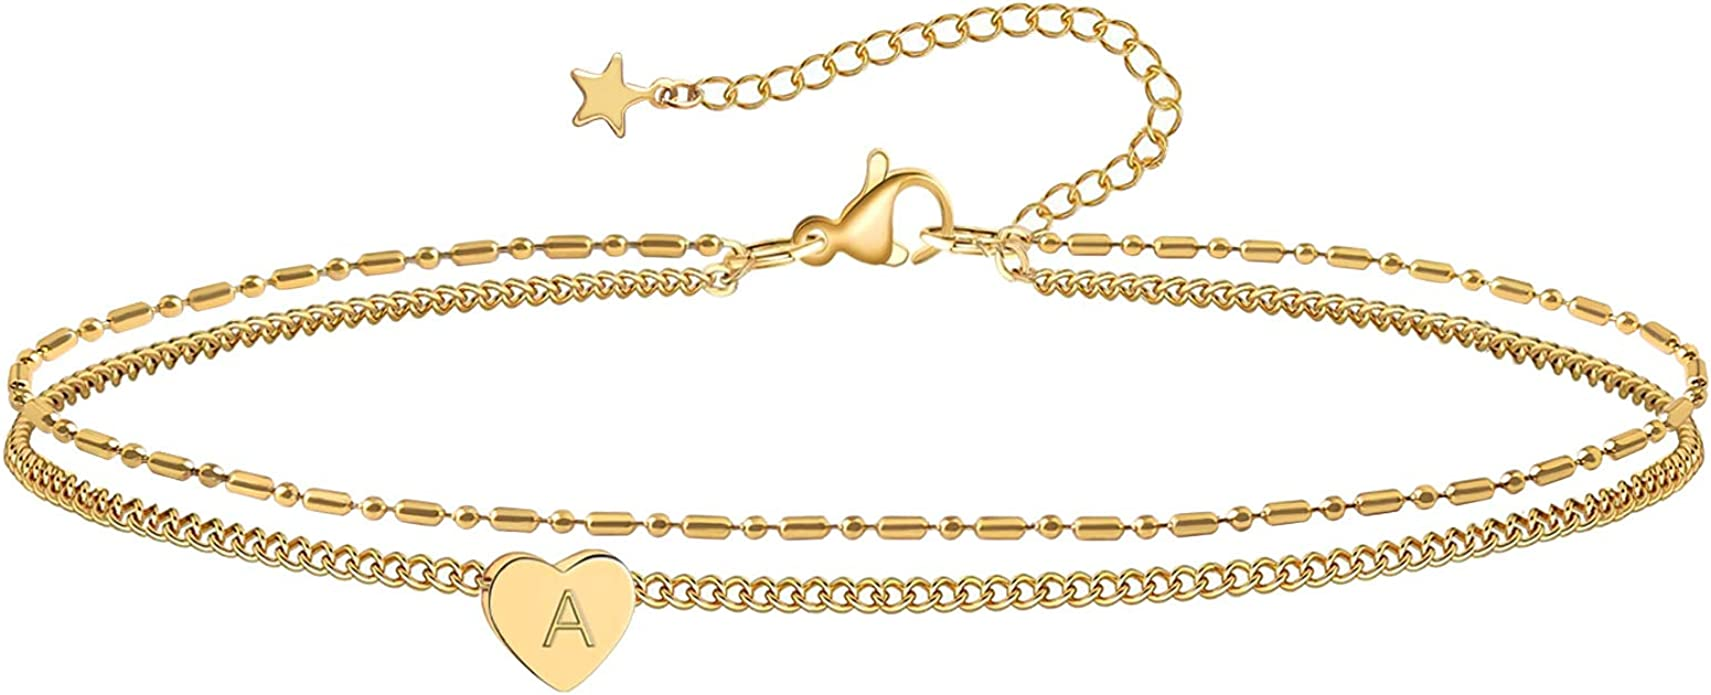 Initial Anklet Gold Letter Anklet Figaro Chain 14K Gold Ankle Bracelets for Women Cute Anklets for Teen Girls Summer Anklet Beach Foot Jewelry